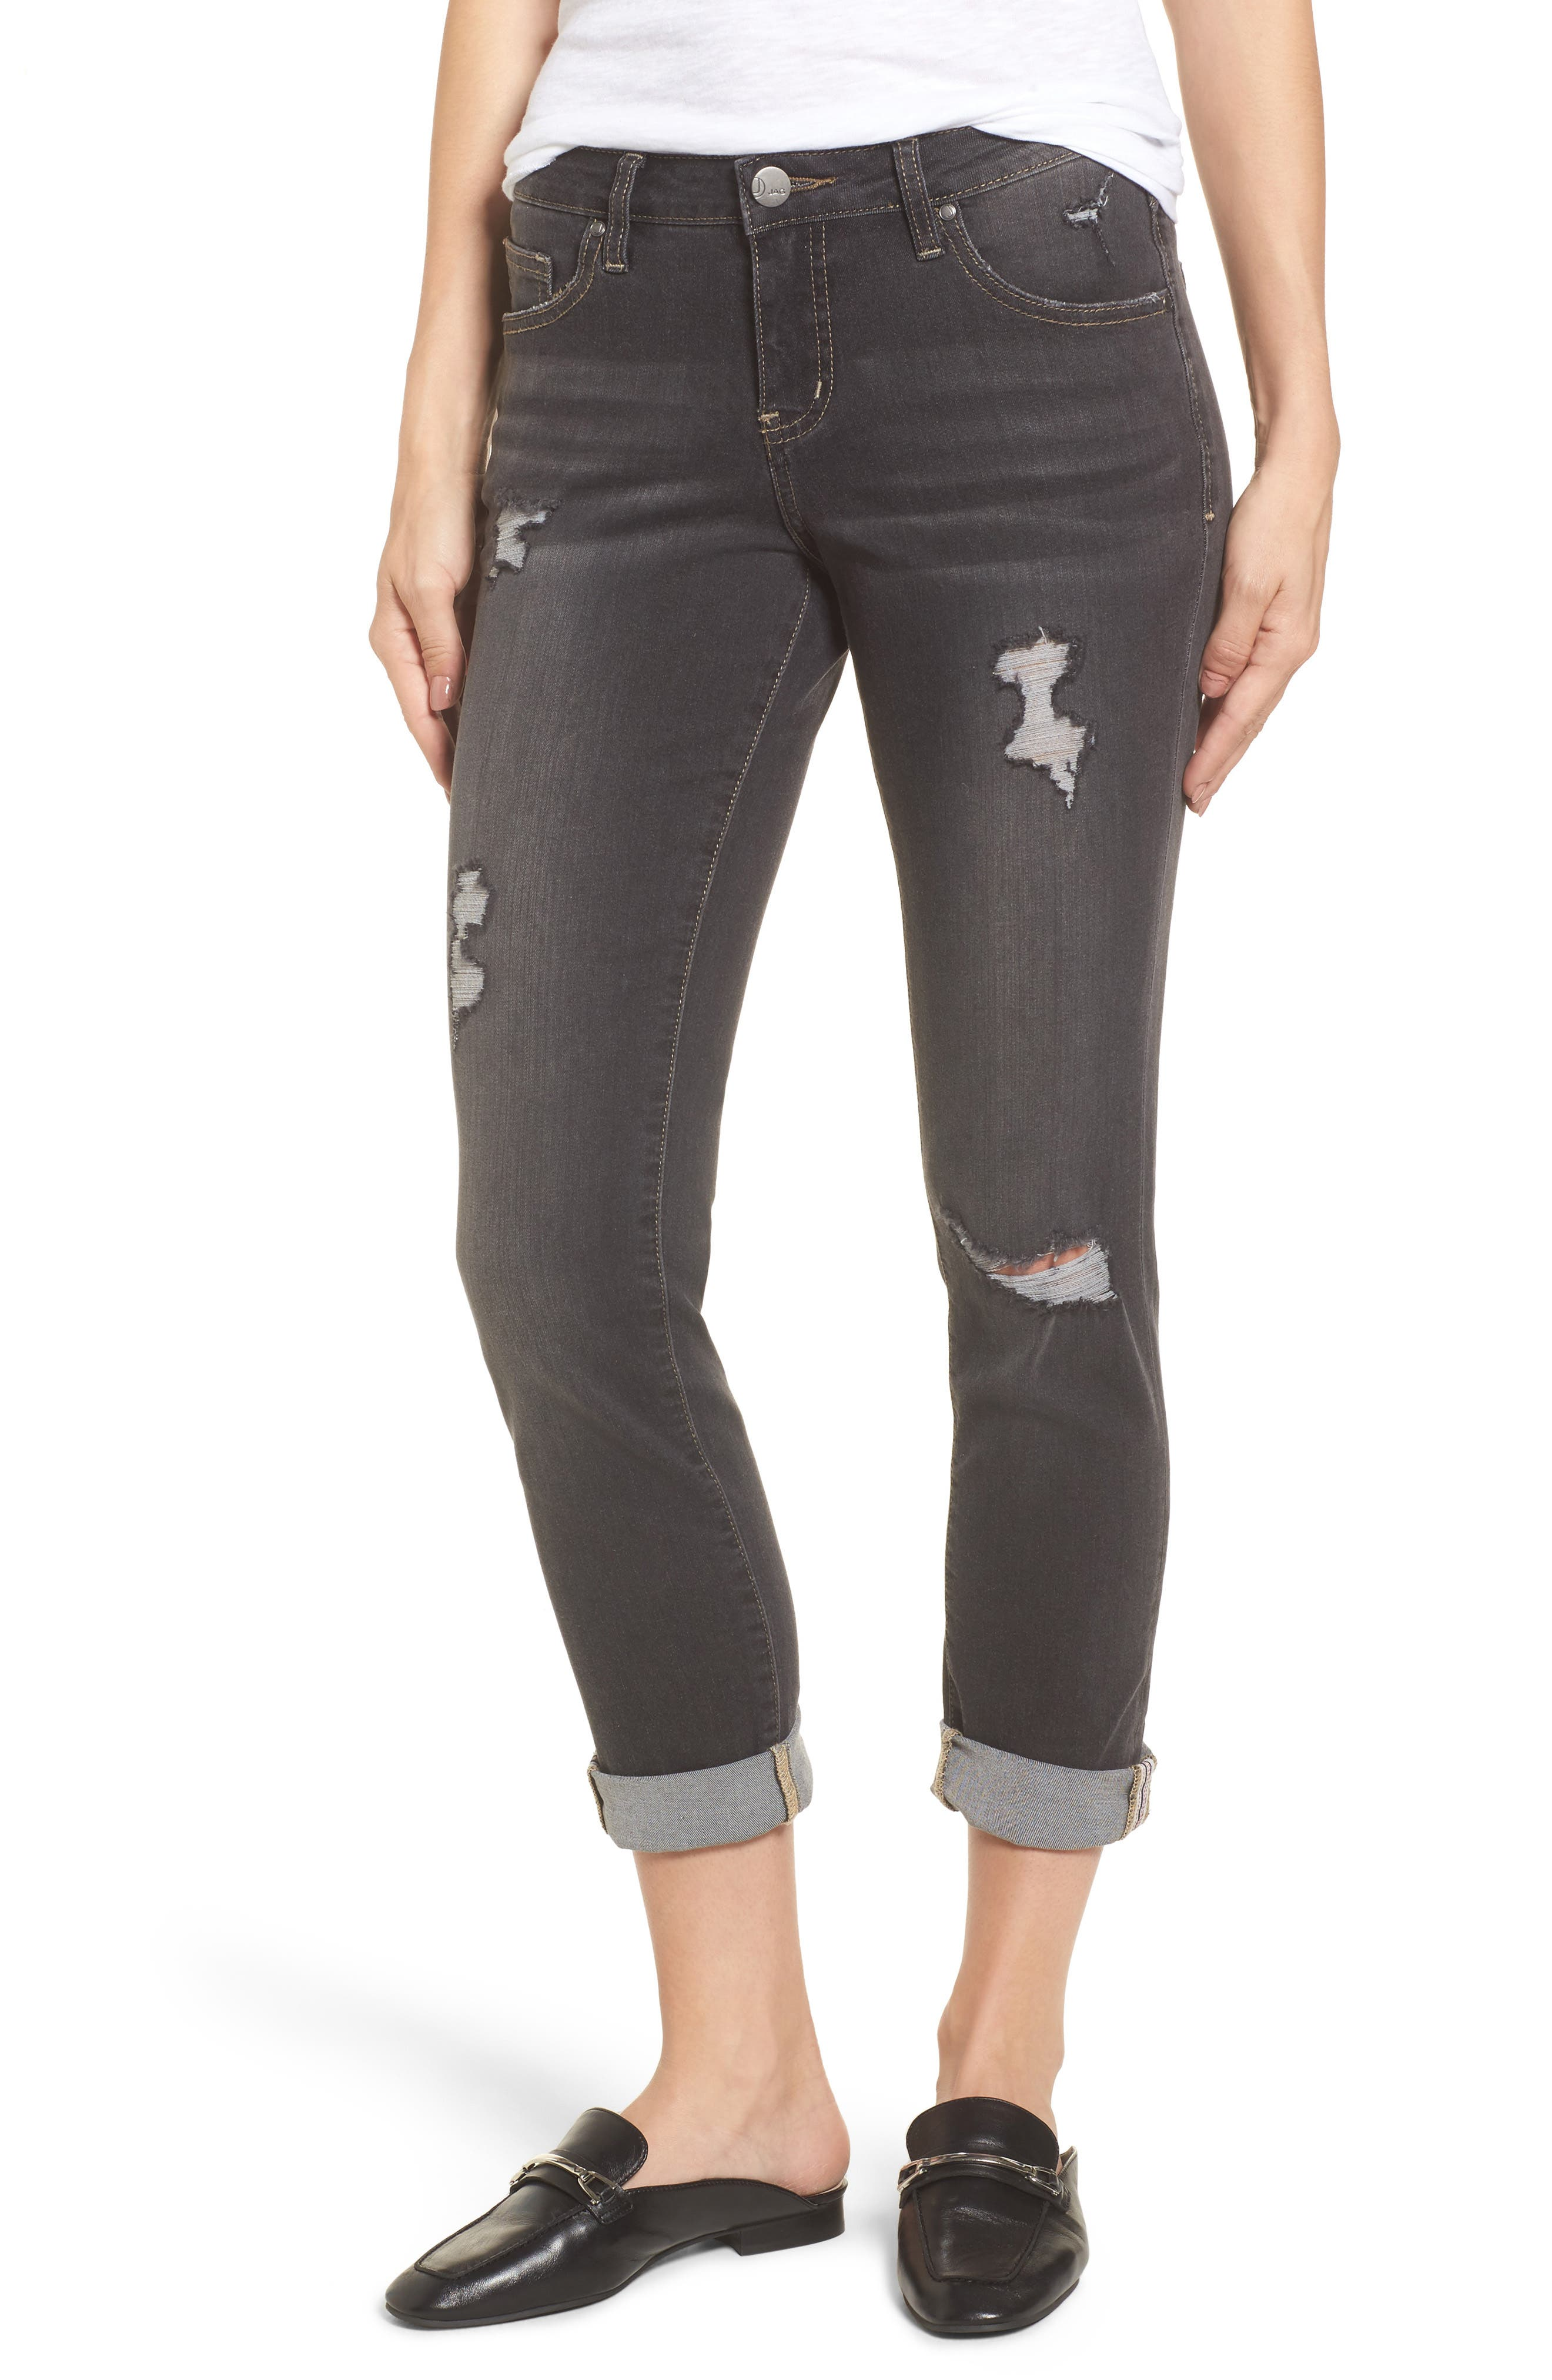 Main Image - Jag Jeans Carter Cuffed Girlfriend Jeans